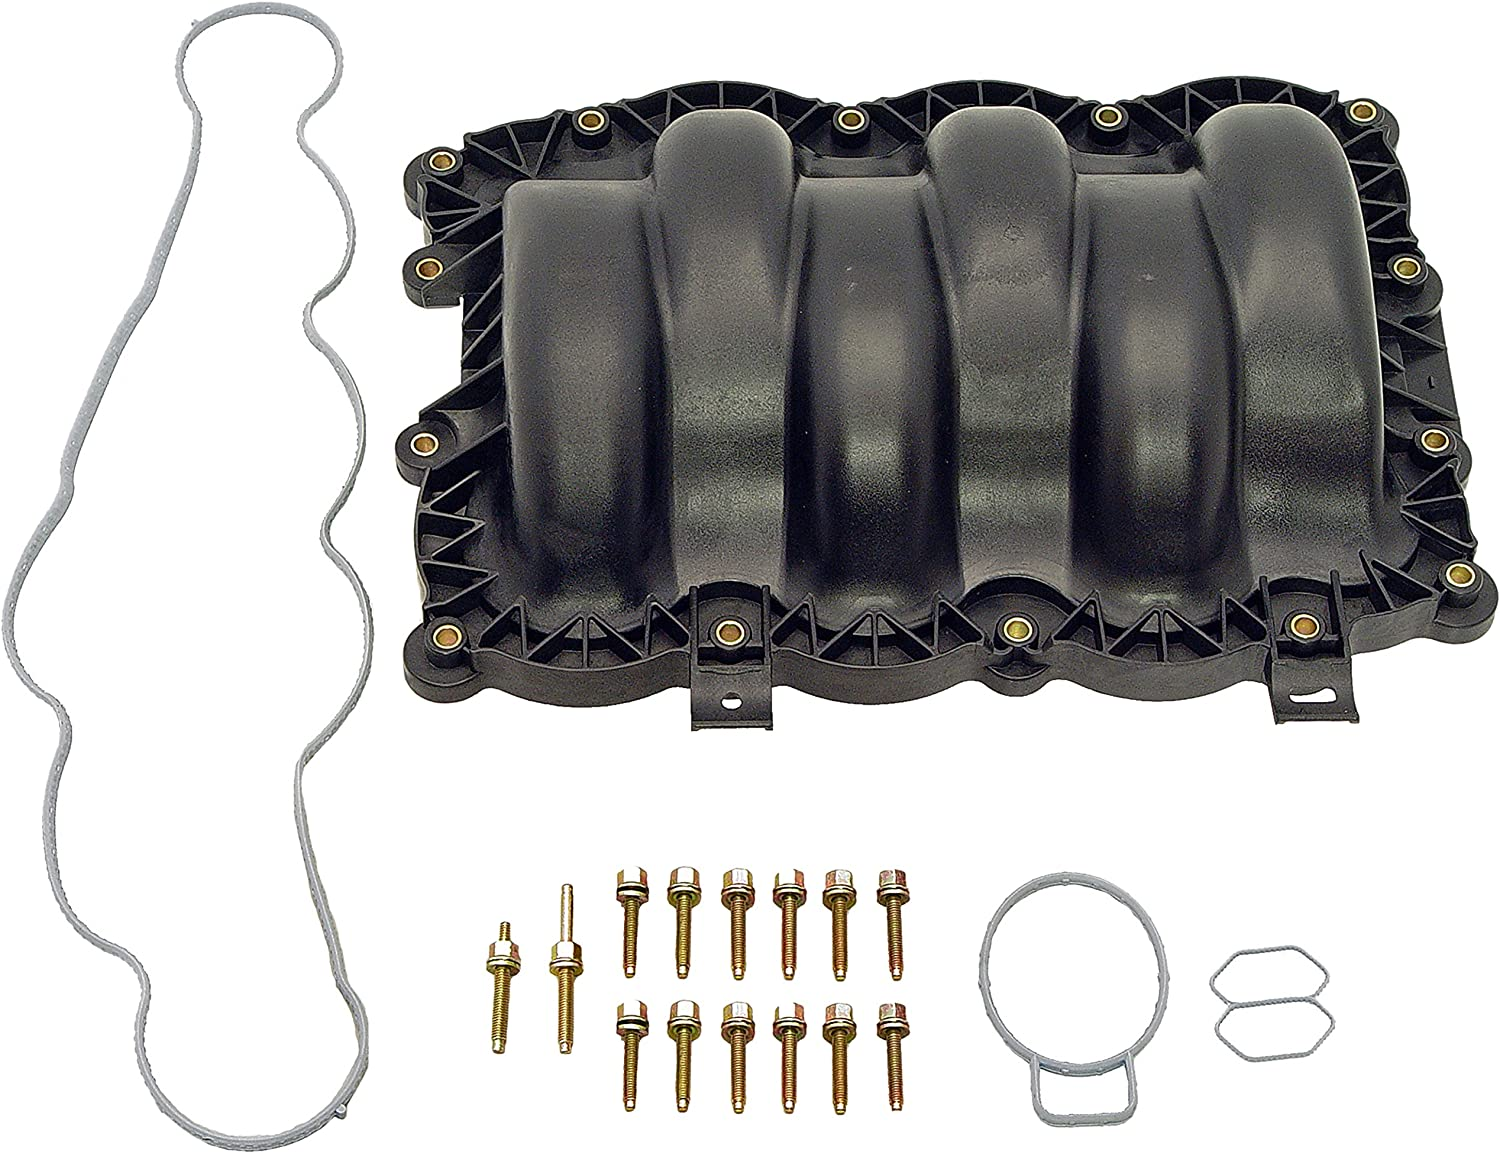 Dorman 615-277 Upper Plastic Intake Manifold - Includes Gaskets for Select Ford Models